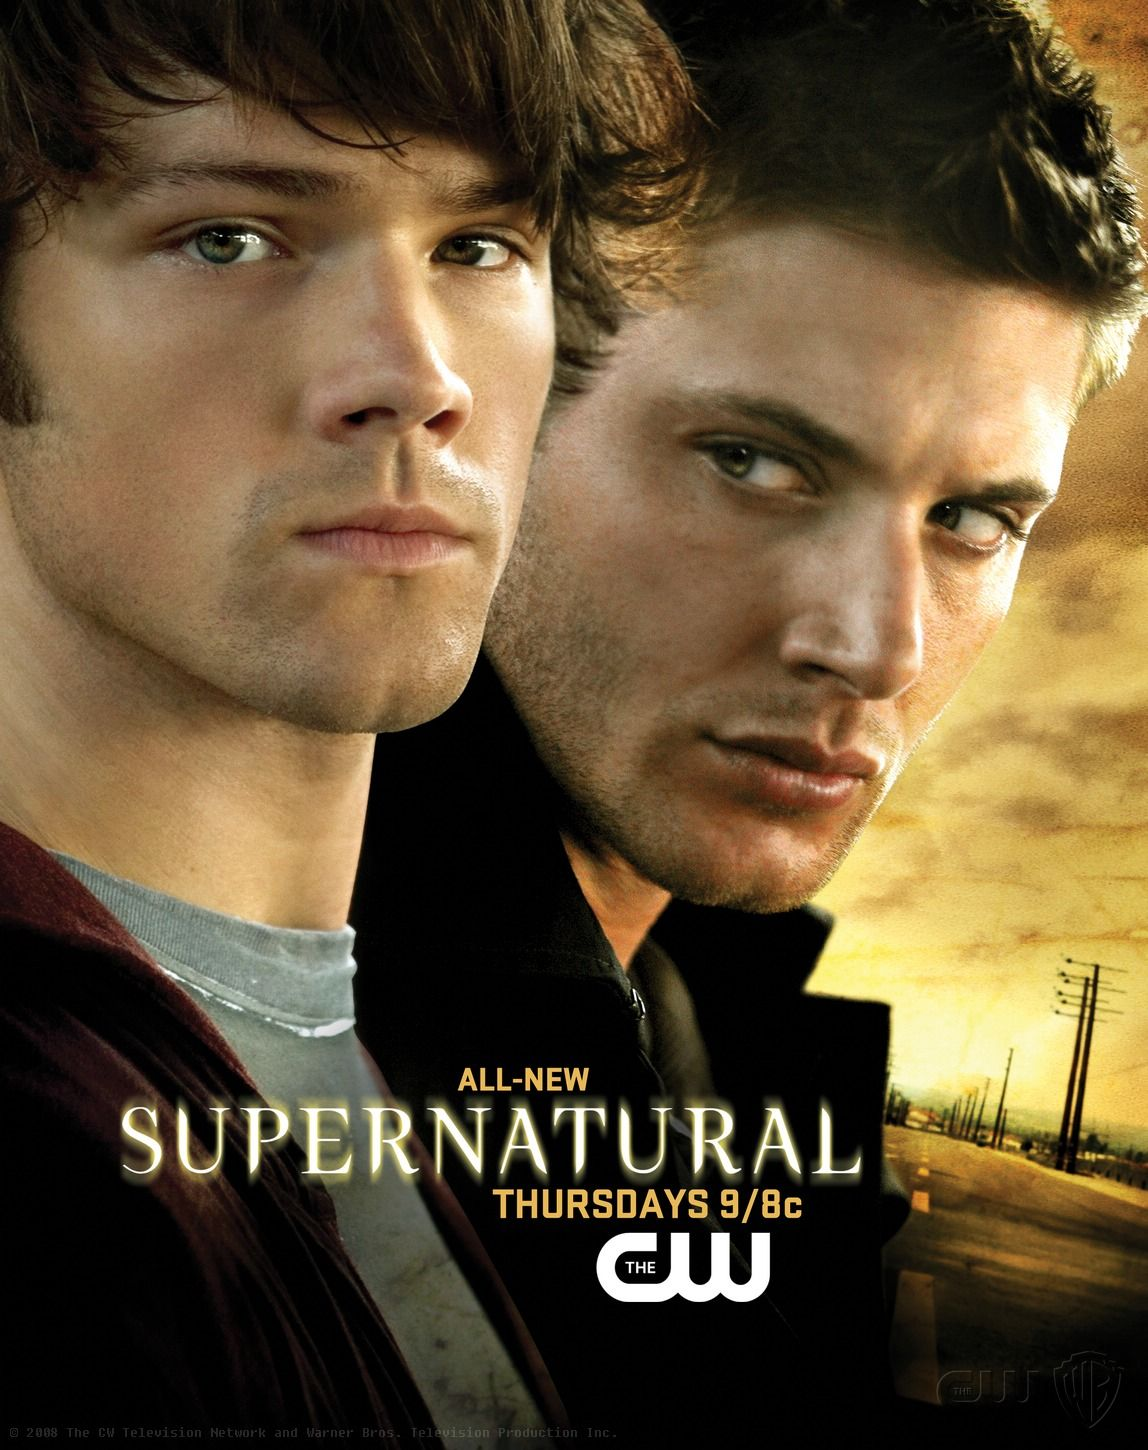 Jensen Ackles 3 American Actor Days of Our Lives Smallville Supernatural Poster